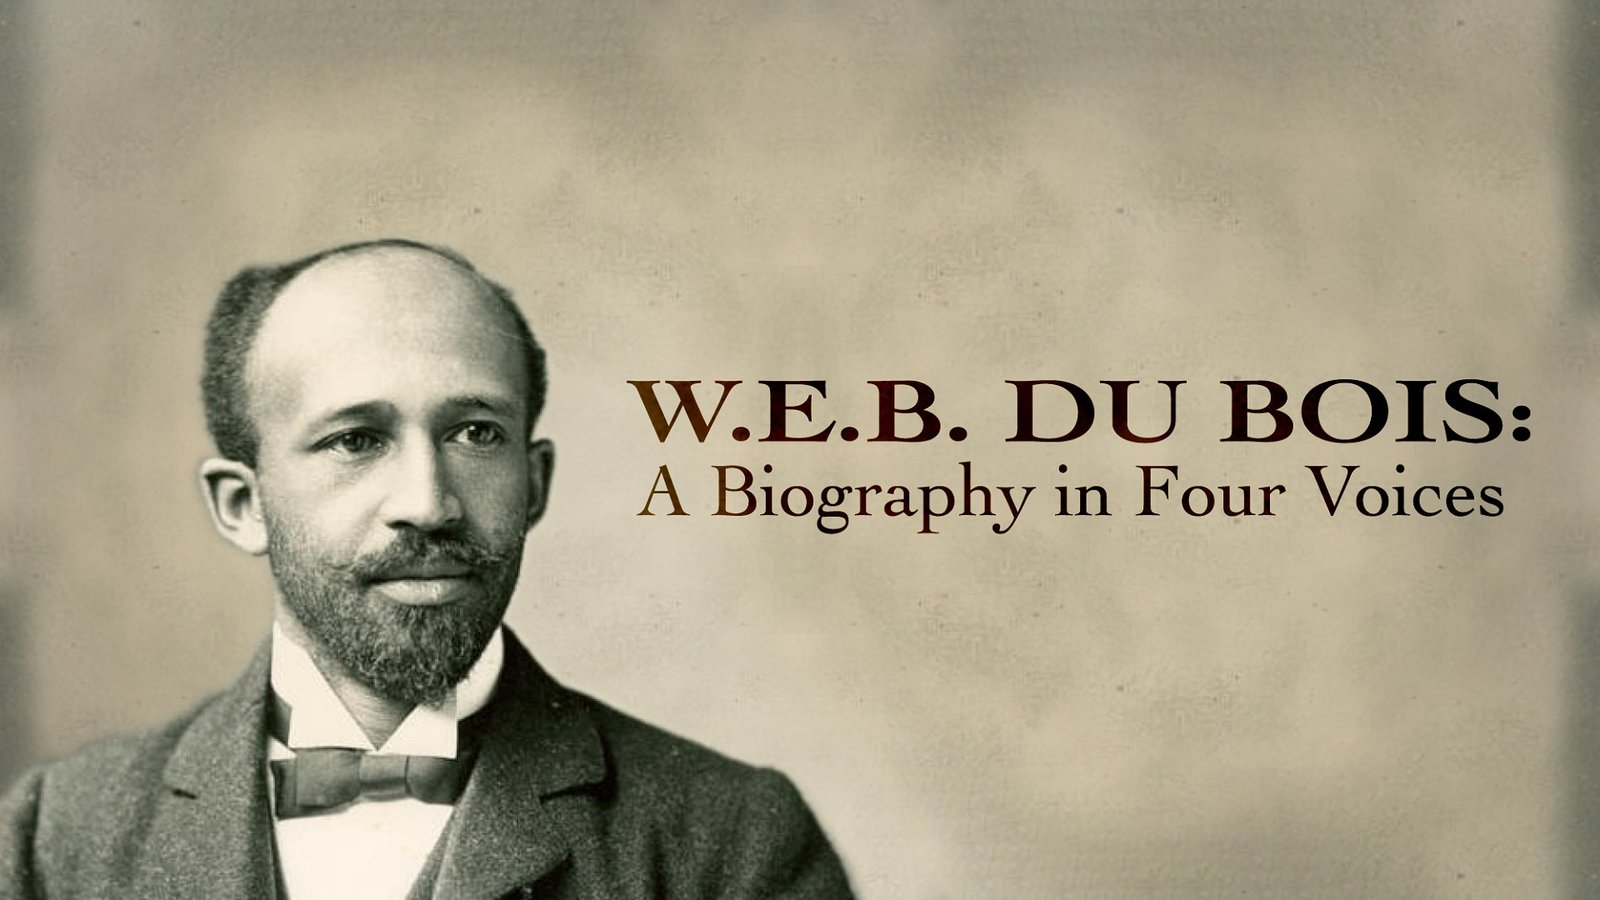 W.E.B. Du Bois - A Biography in Four Voices